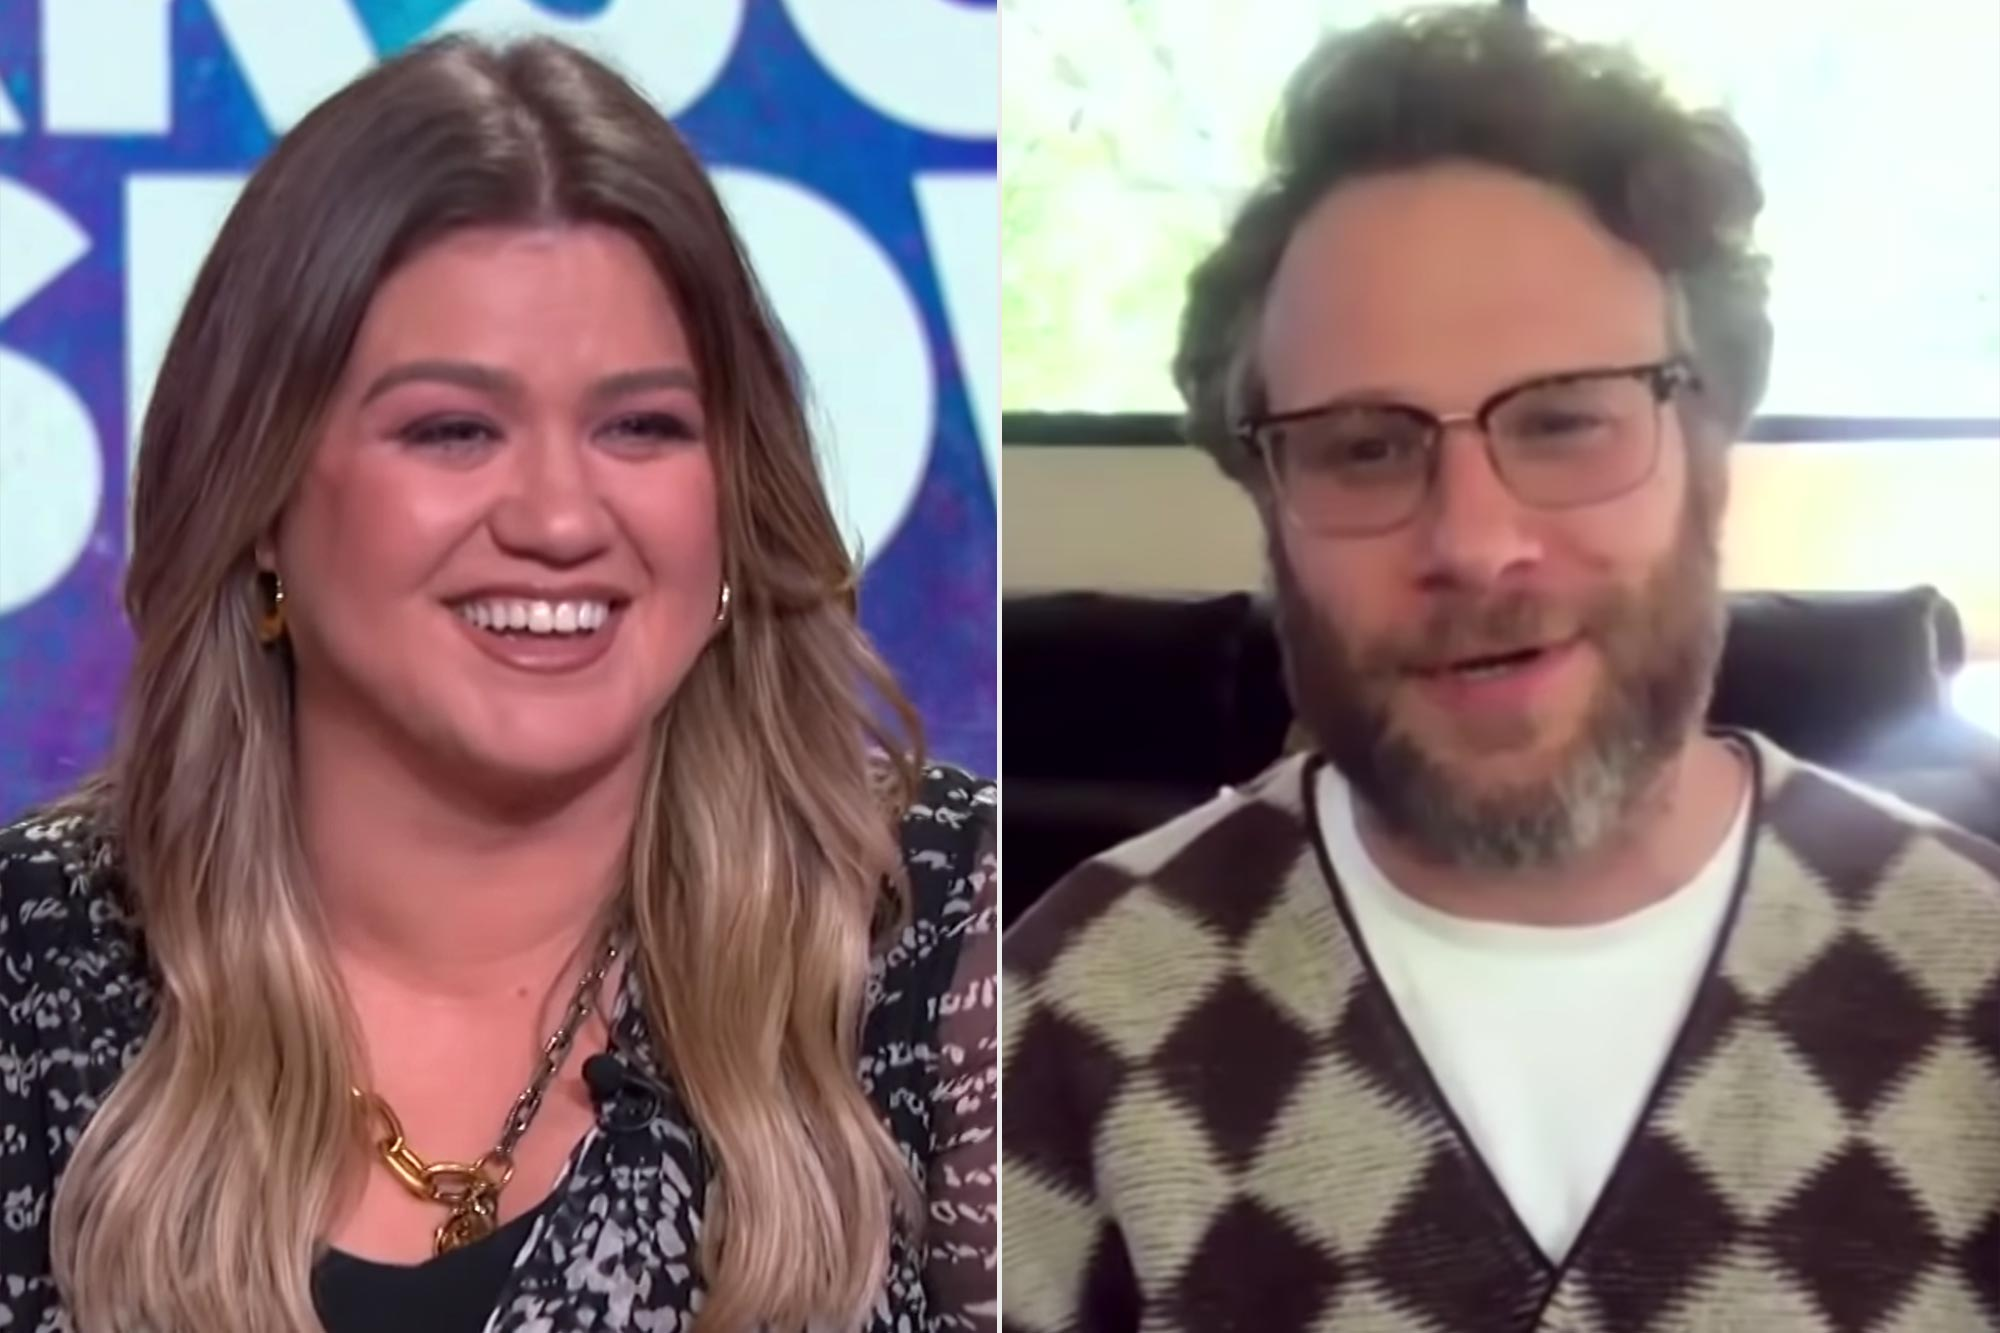 Kelly Clarkson and Seth Rogen Seth Rogen Wrote The Iconic 'Ahh, Kelly Clarkson!' Line From 'The 40-Year-Old Virgin'